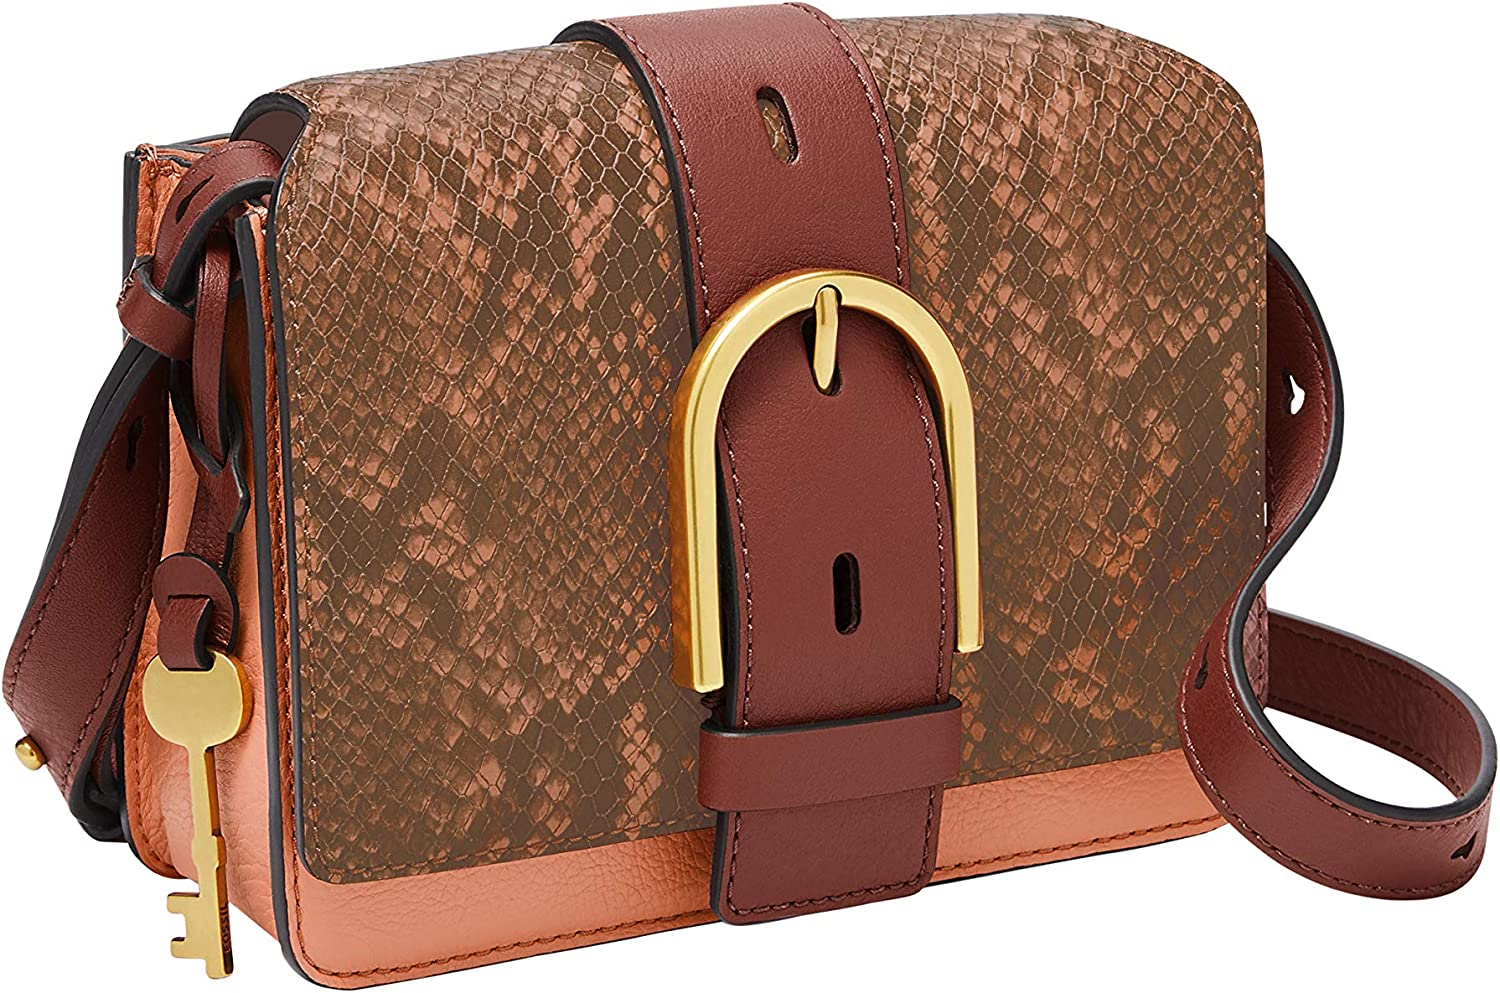 The Best Fossil Handbags Piper Toaster